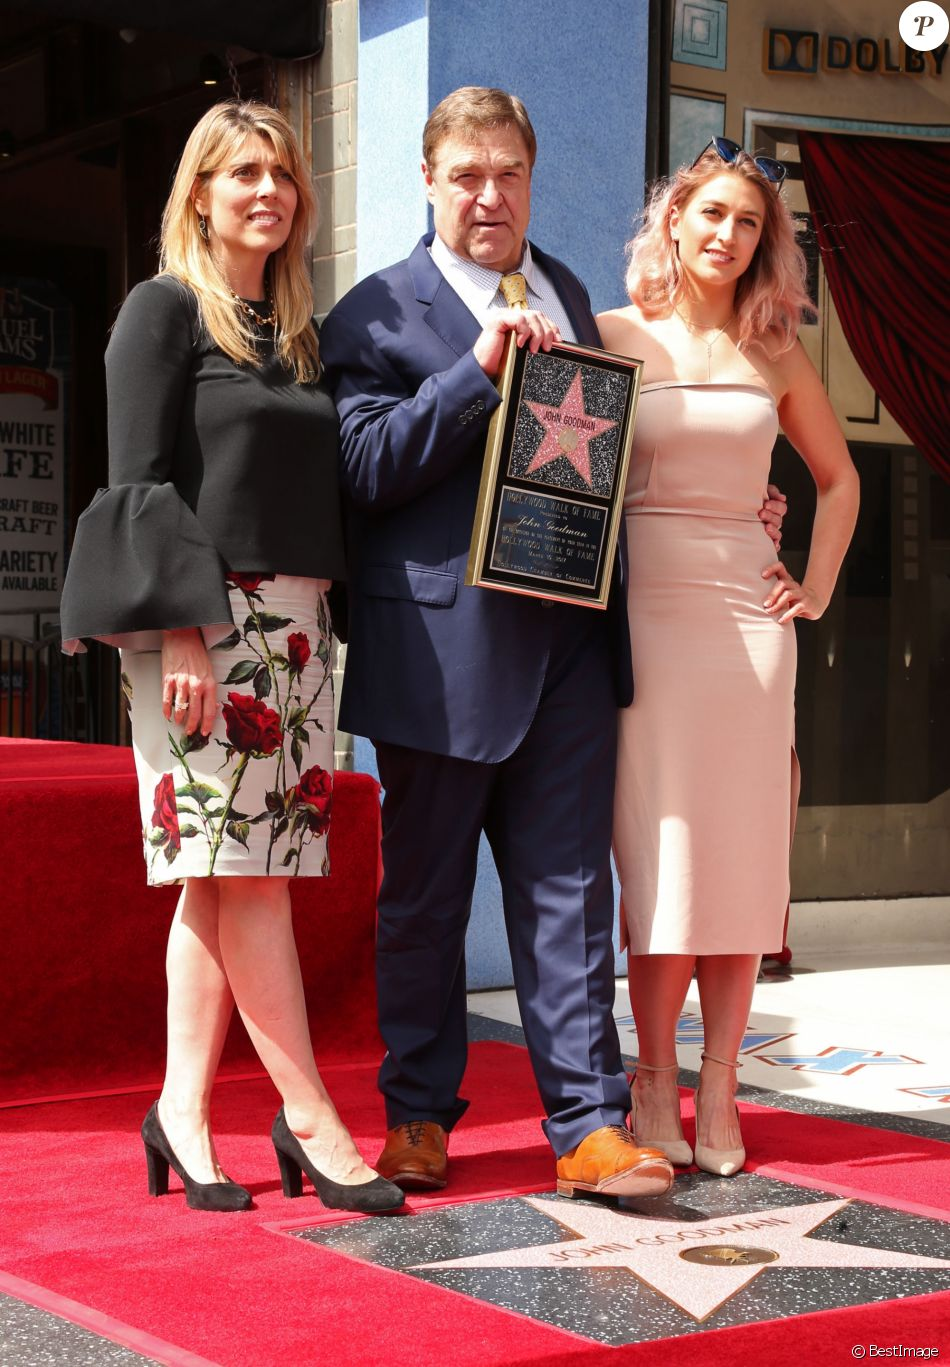 John Goodman entouré de sa femme Anna Beth et de sa fille Molly Evangeline - Inauguration de la plaque de John Goodman sur le Walk Of Fame à Hollywood. Le 10 mars 2017  Celebrities attending the Hollywood Walk Of Fame Ceremony for John Goodman in Hollywood, California on March 10, 2017.10/03/2017 - Hollywood